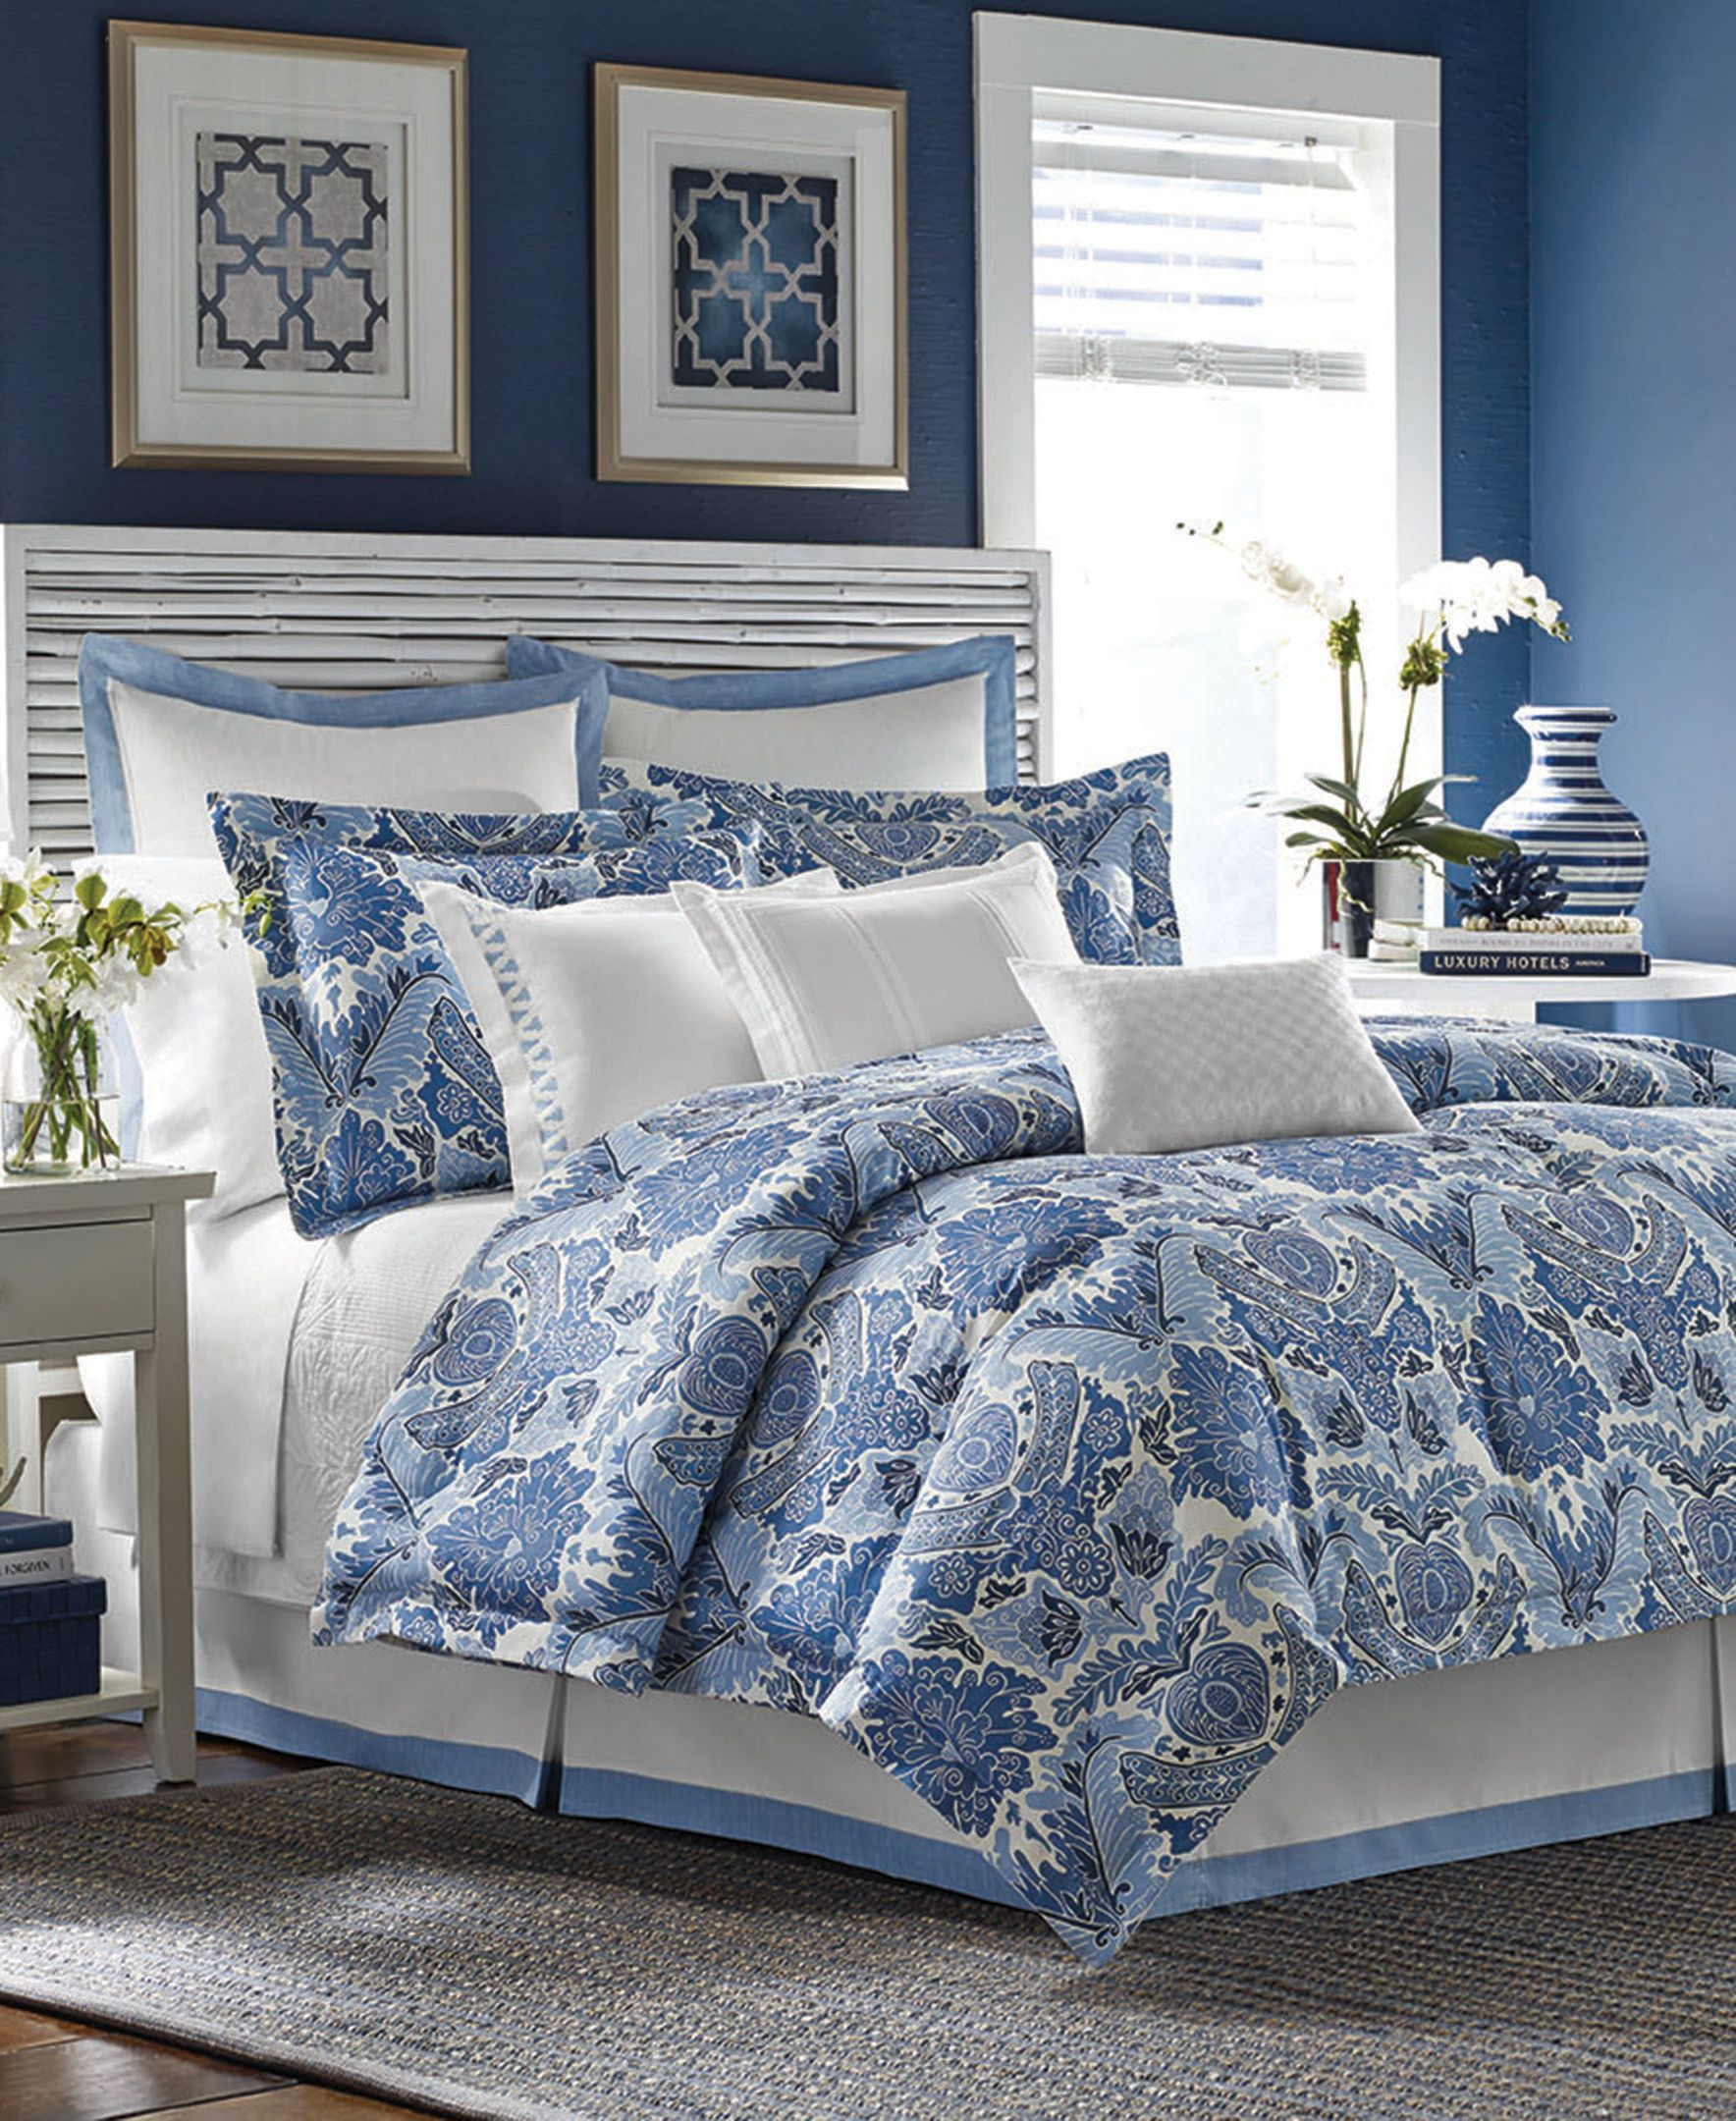 guest roomsqueen setsking set by bedding surfside pin home coastal tommy stripe bahama comforter king